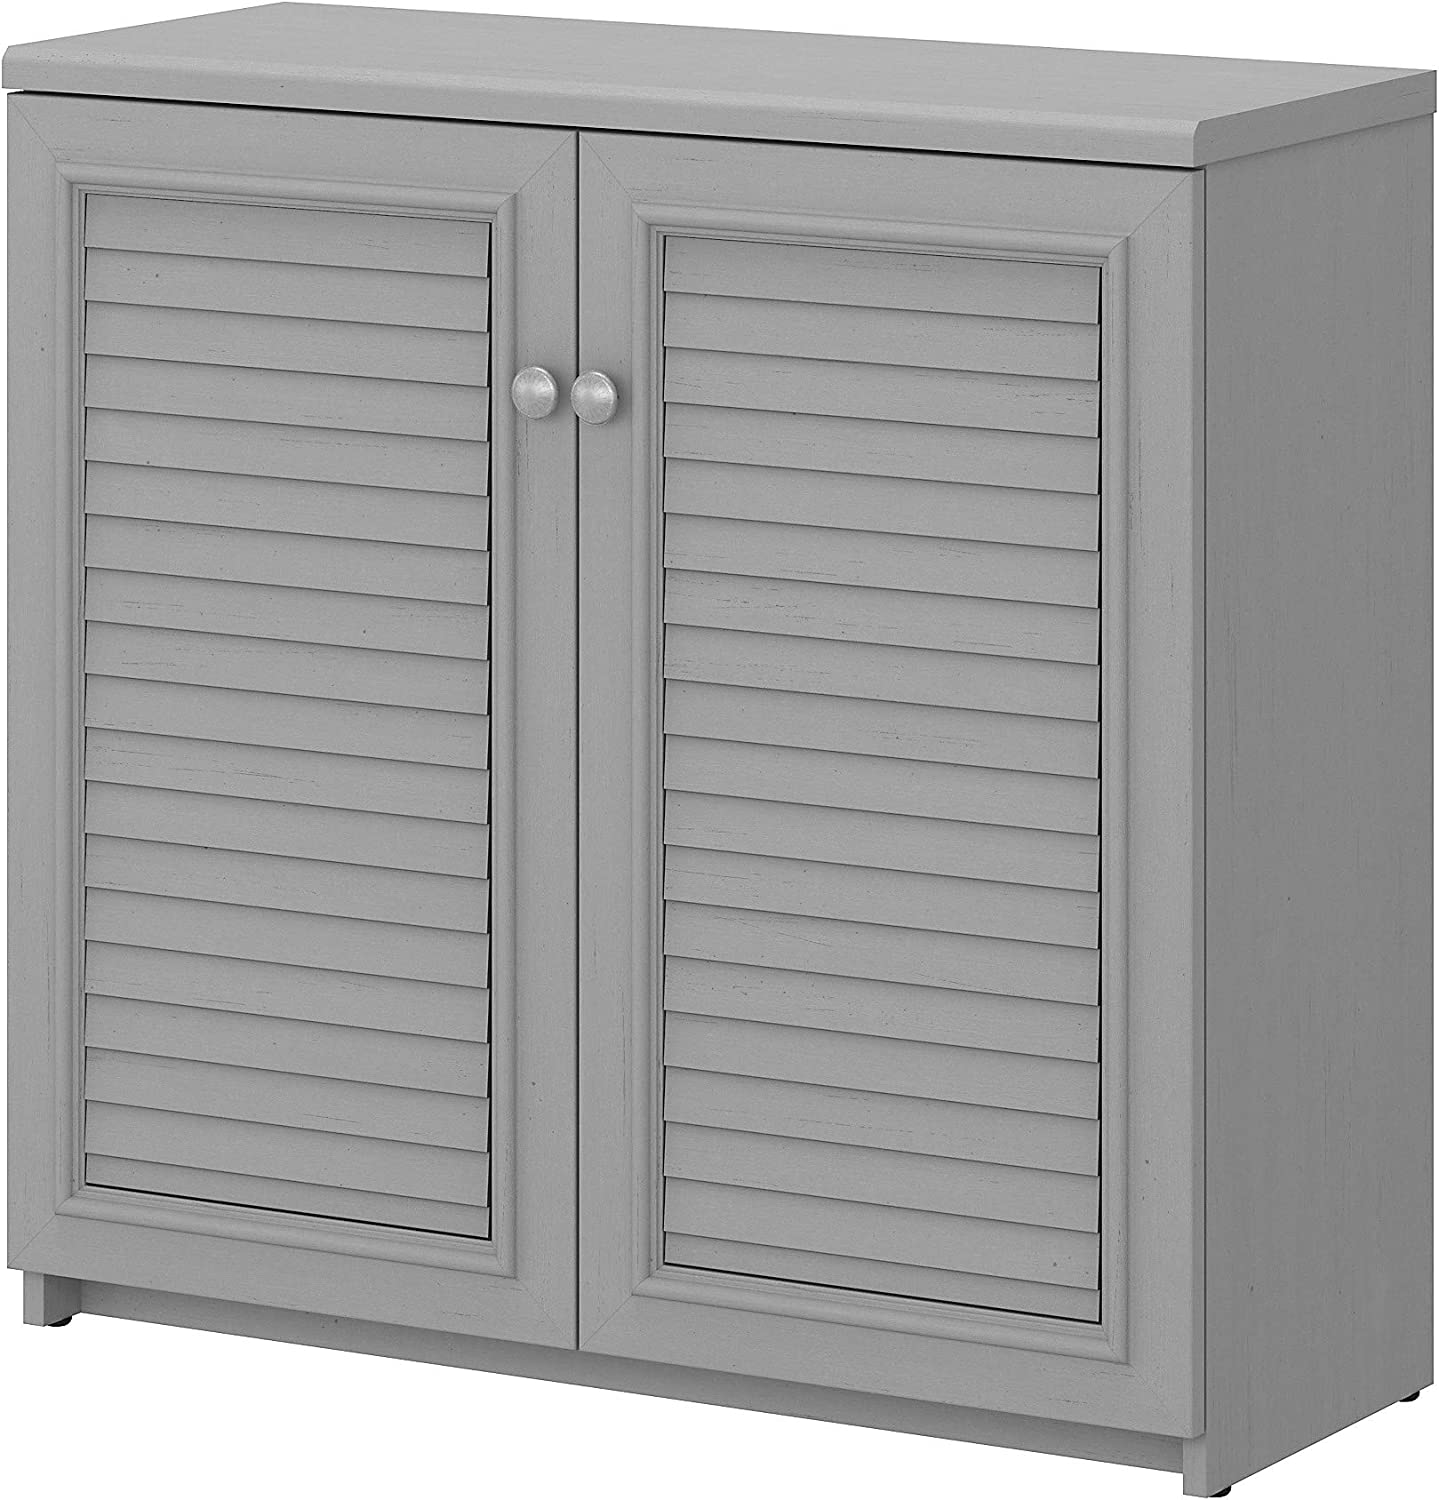 Bush Furniture Fairview Max 74% Courier shipping free shipping OFF Small Storage and Cabinet She with Doors